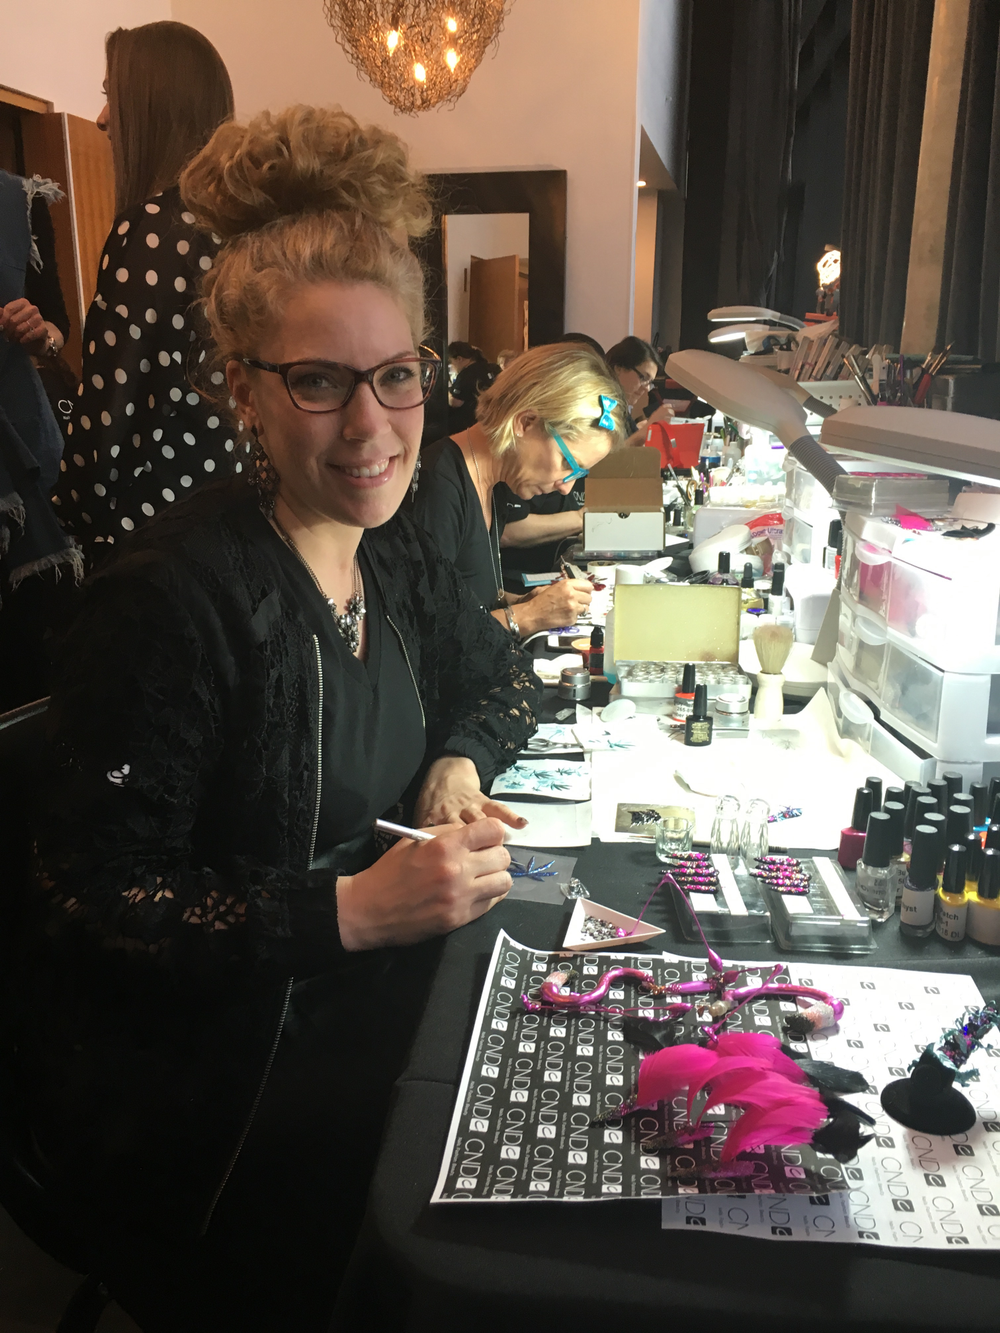 <p>Torie Bastian, artist in residence, hard at work in The Design Lab</p>